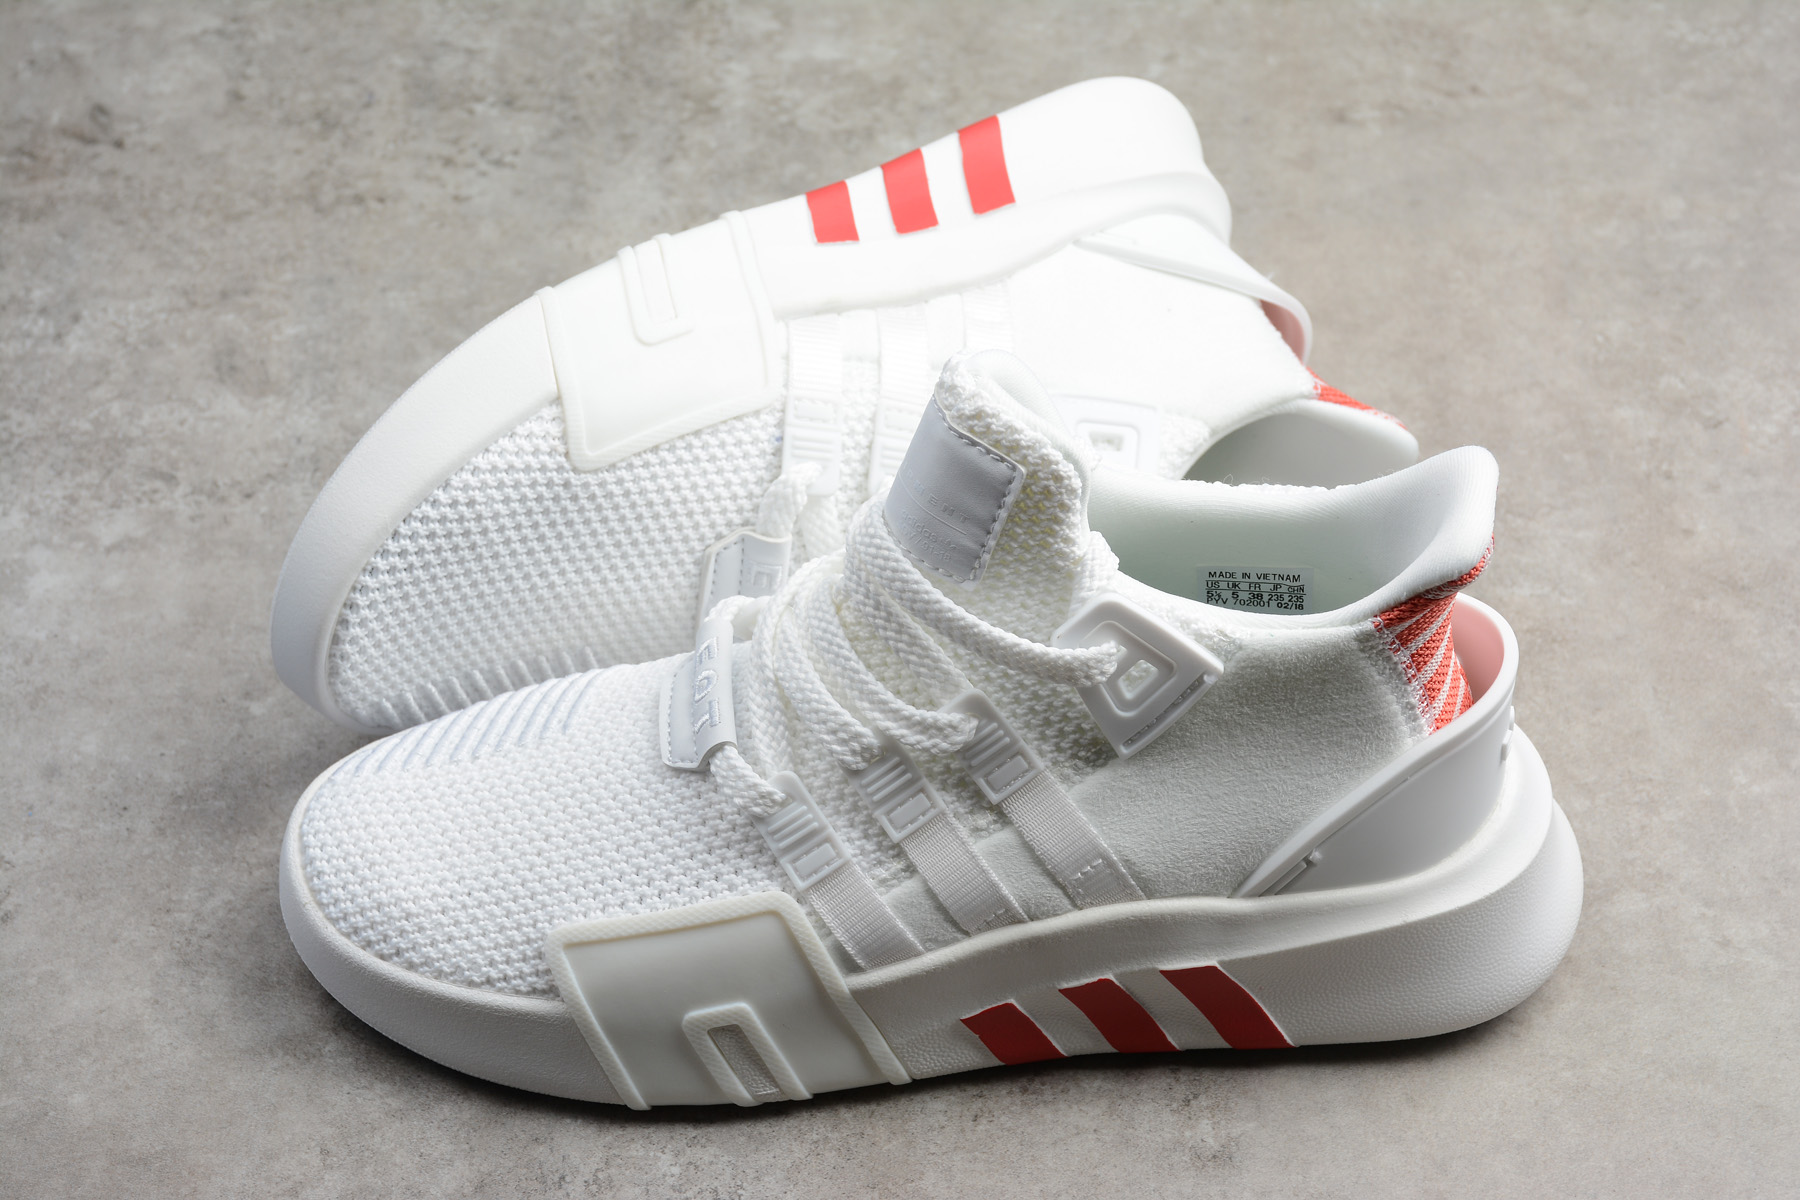 adidas EQT Bask ADV White/Trace Scarlet Men's and Women's Size Shoes CQ2992